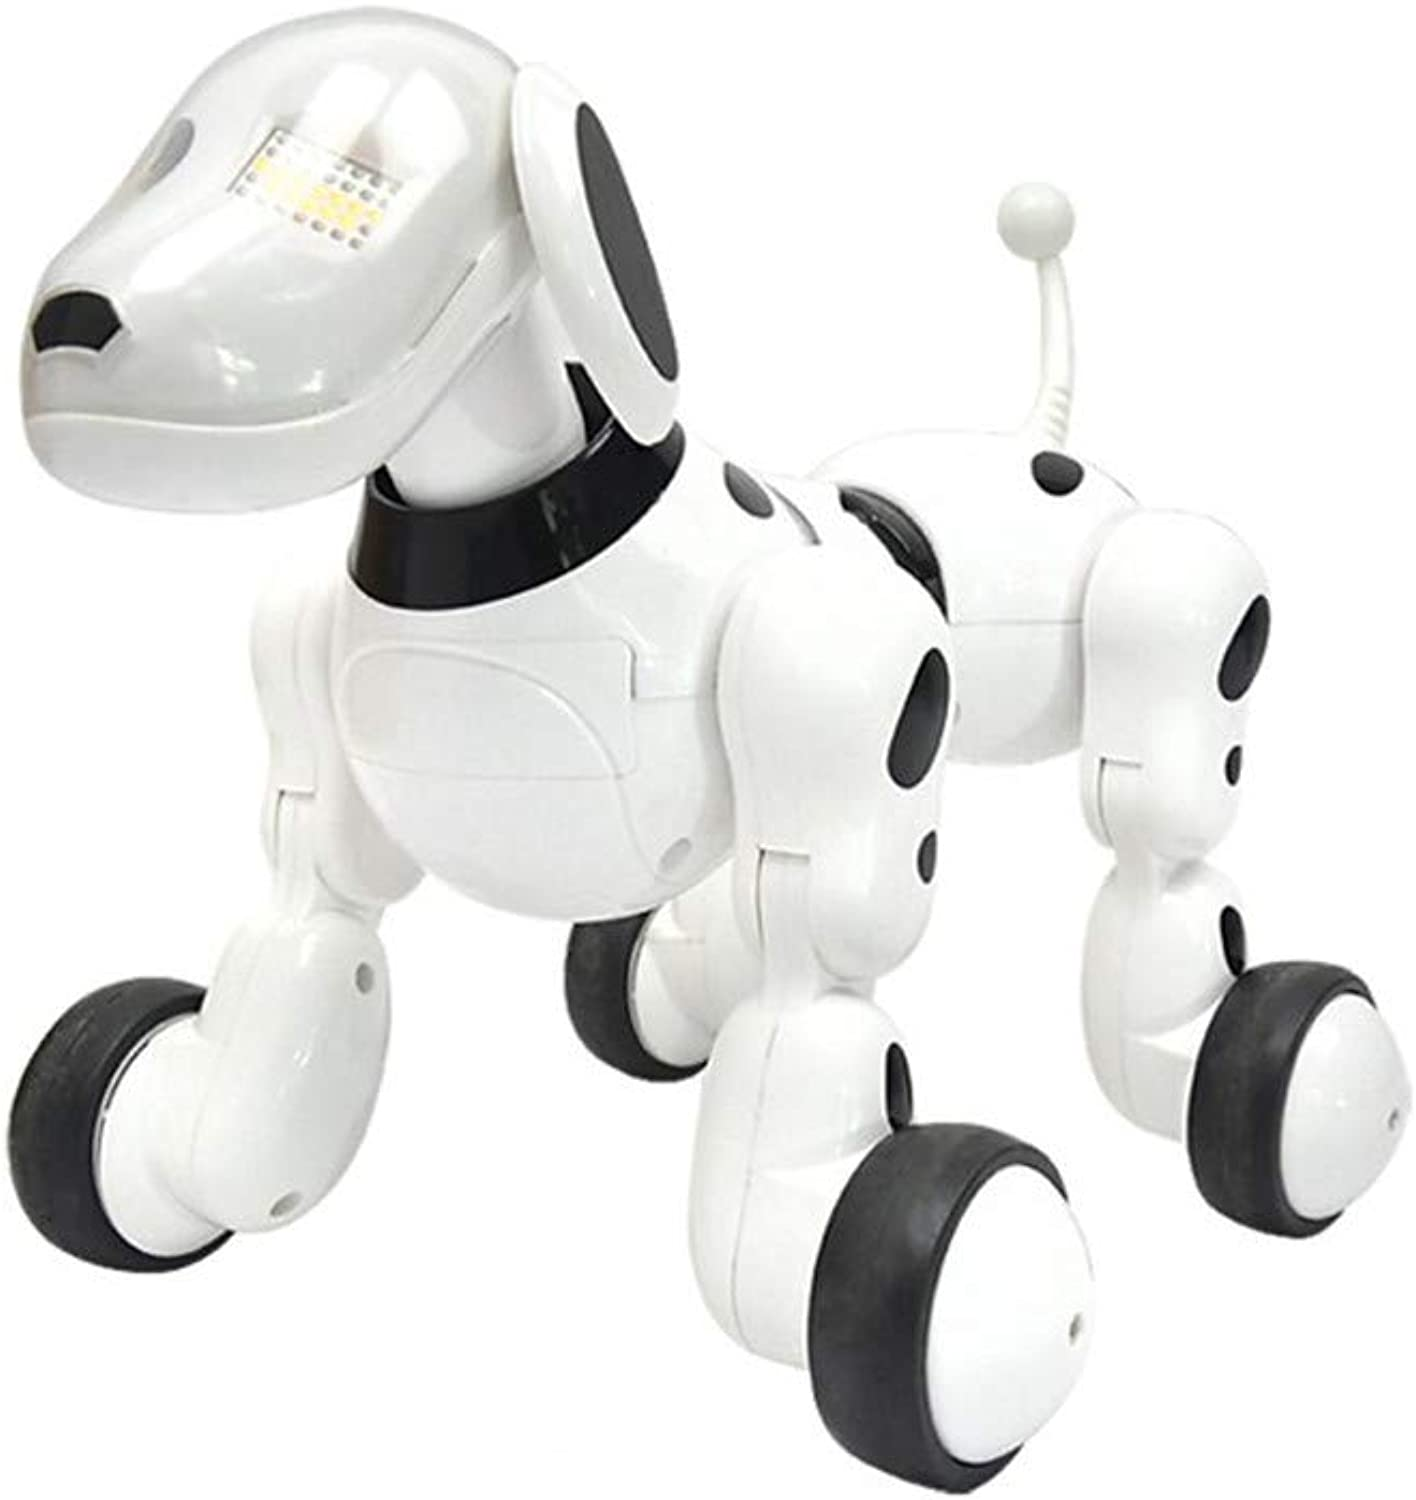 Tang Queen TQ Robot Dog Toys Gift for Boys Girls Kids with Interactive Speak Touch Gesture Remote Control(White)